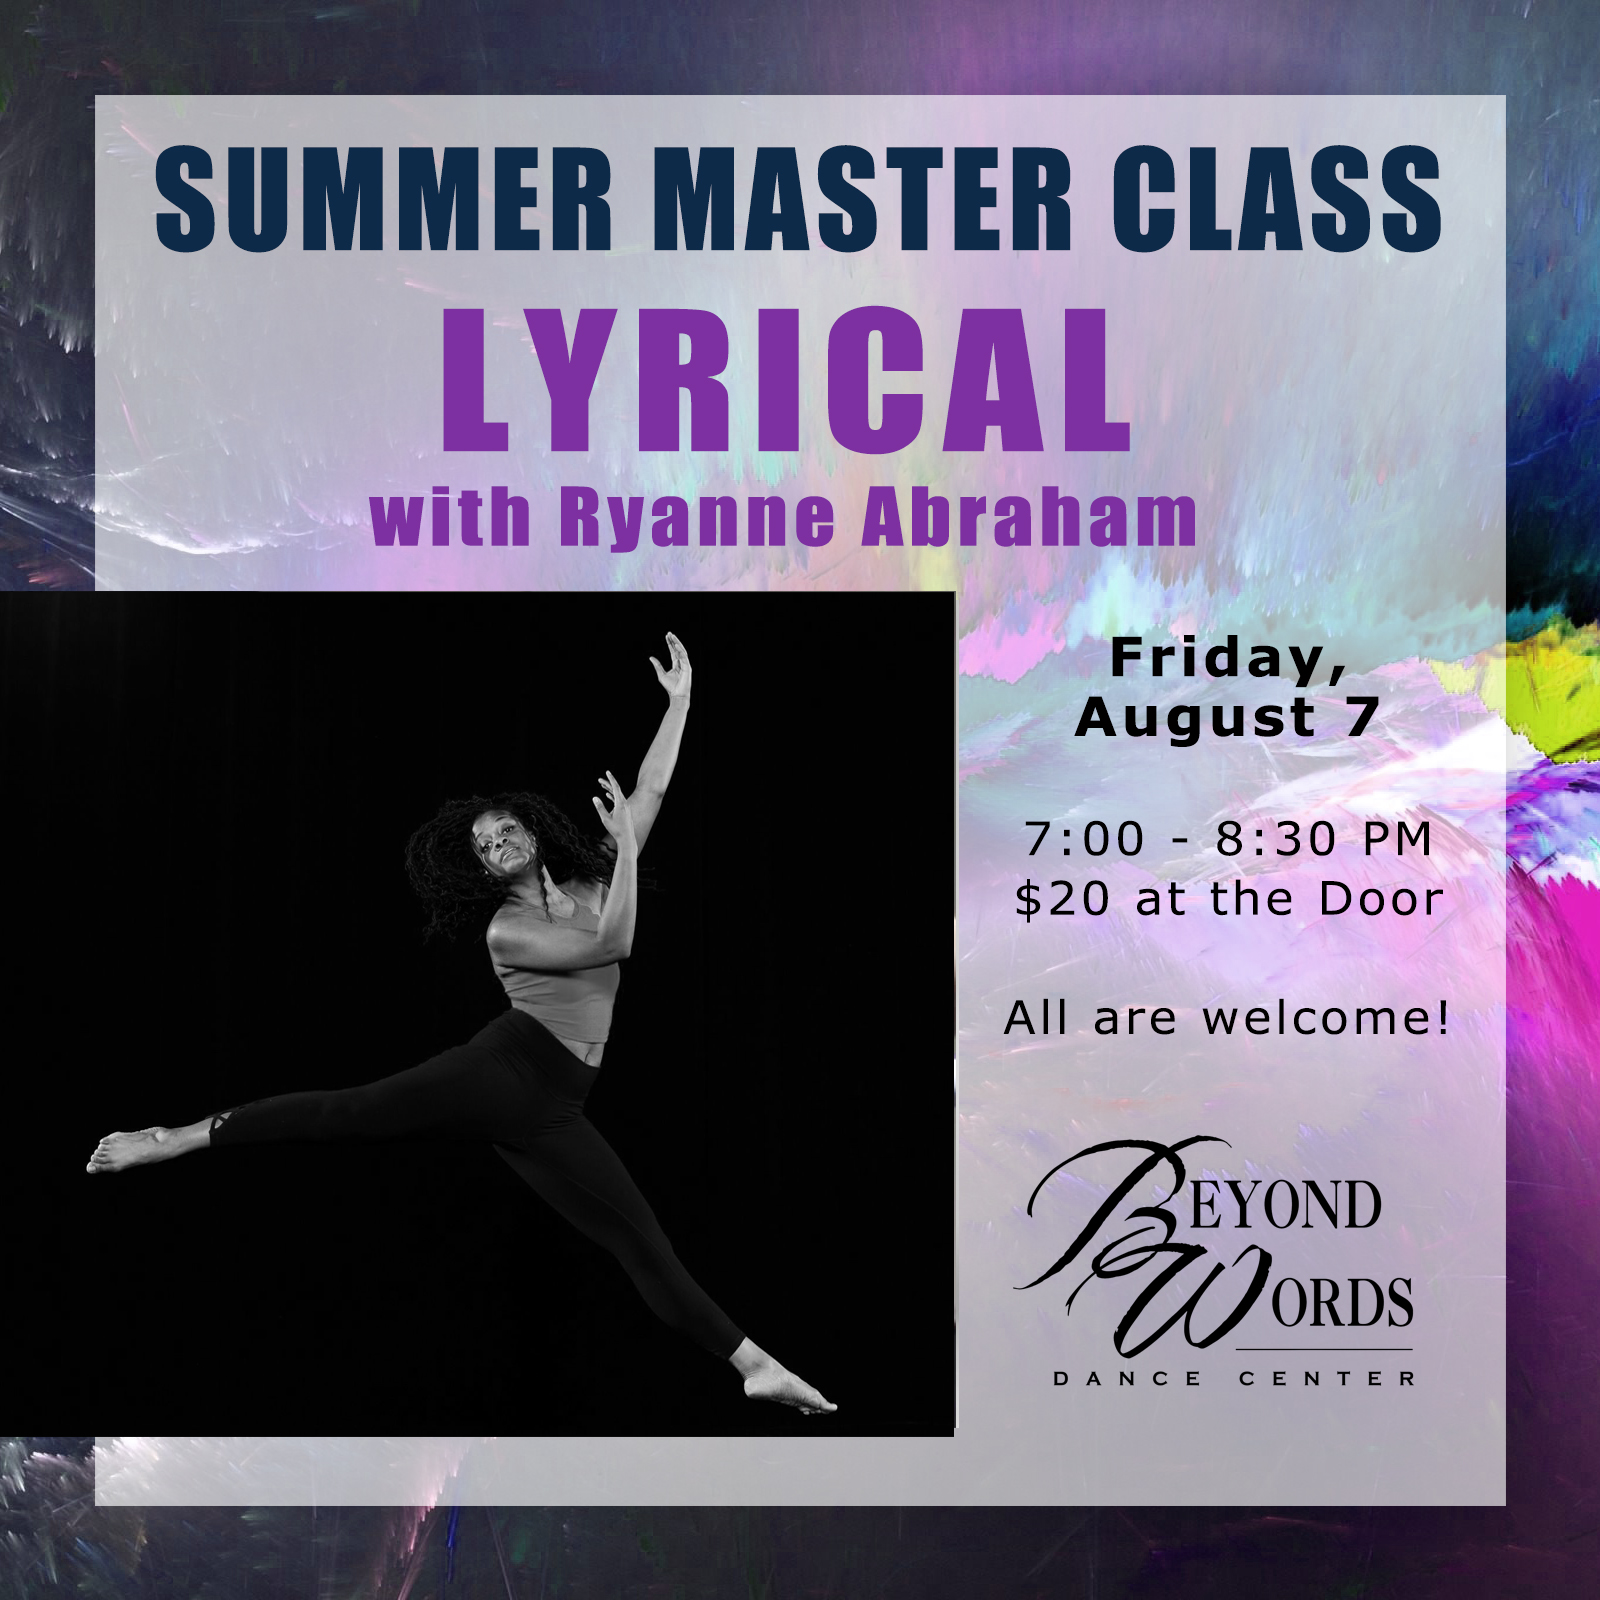 Summer Master Class - Lyrical